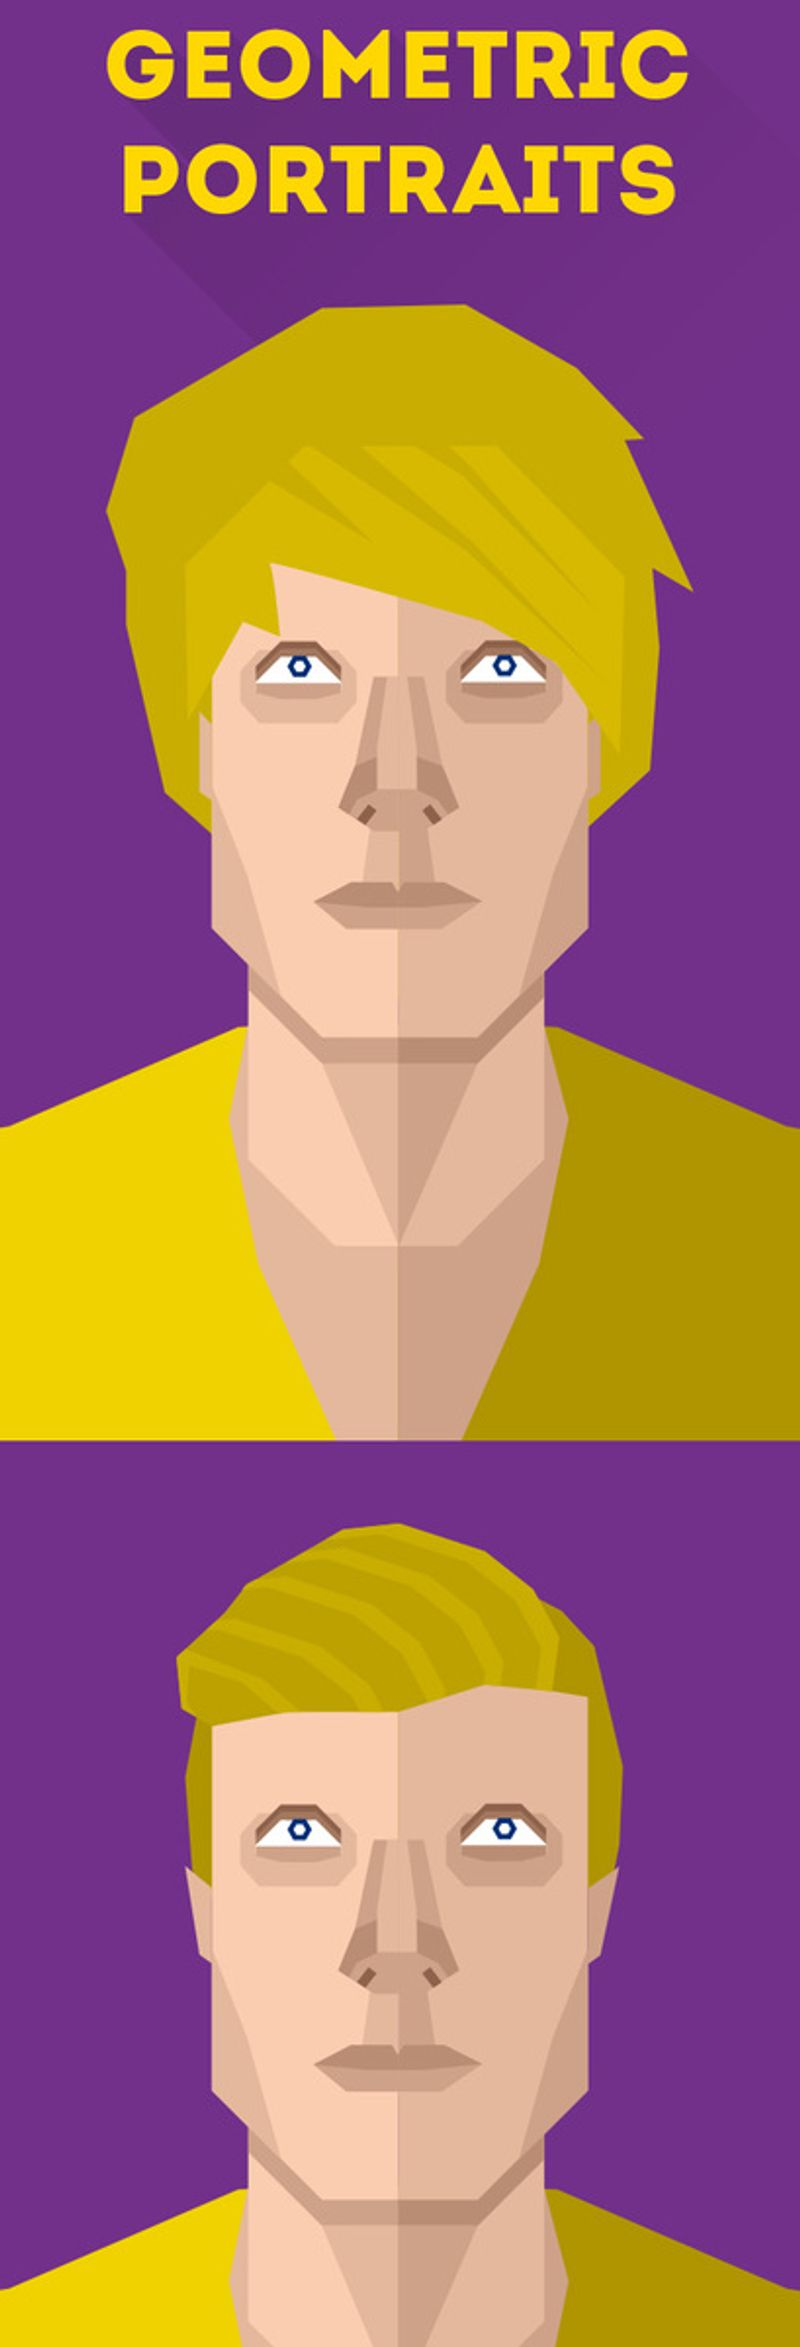 A geometric self-portrait done of myself for use on my portfolio and as an identity.